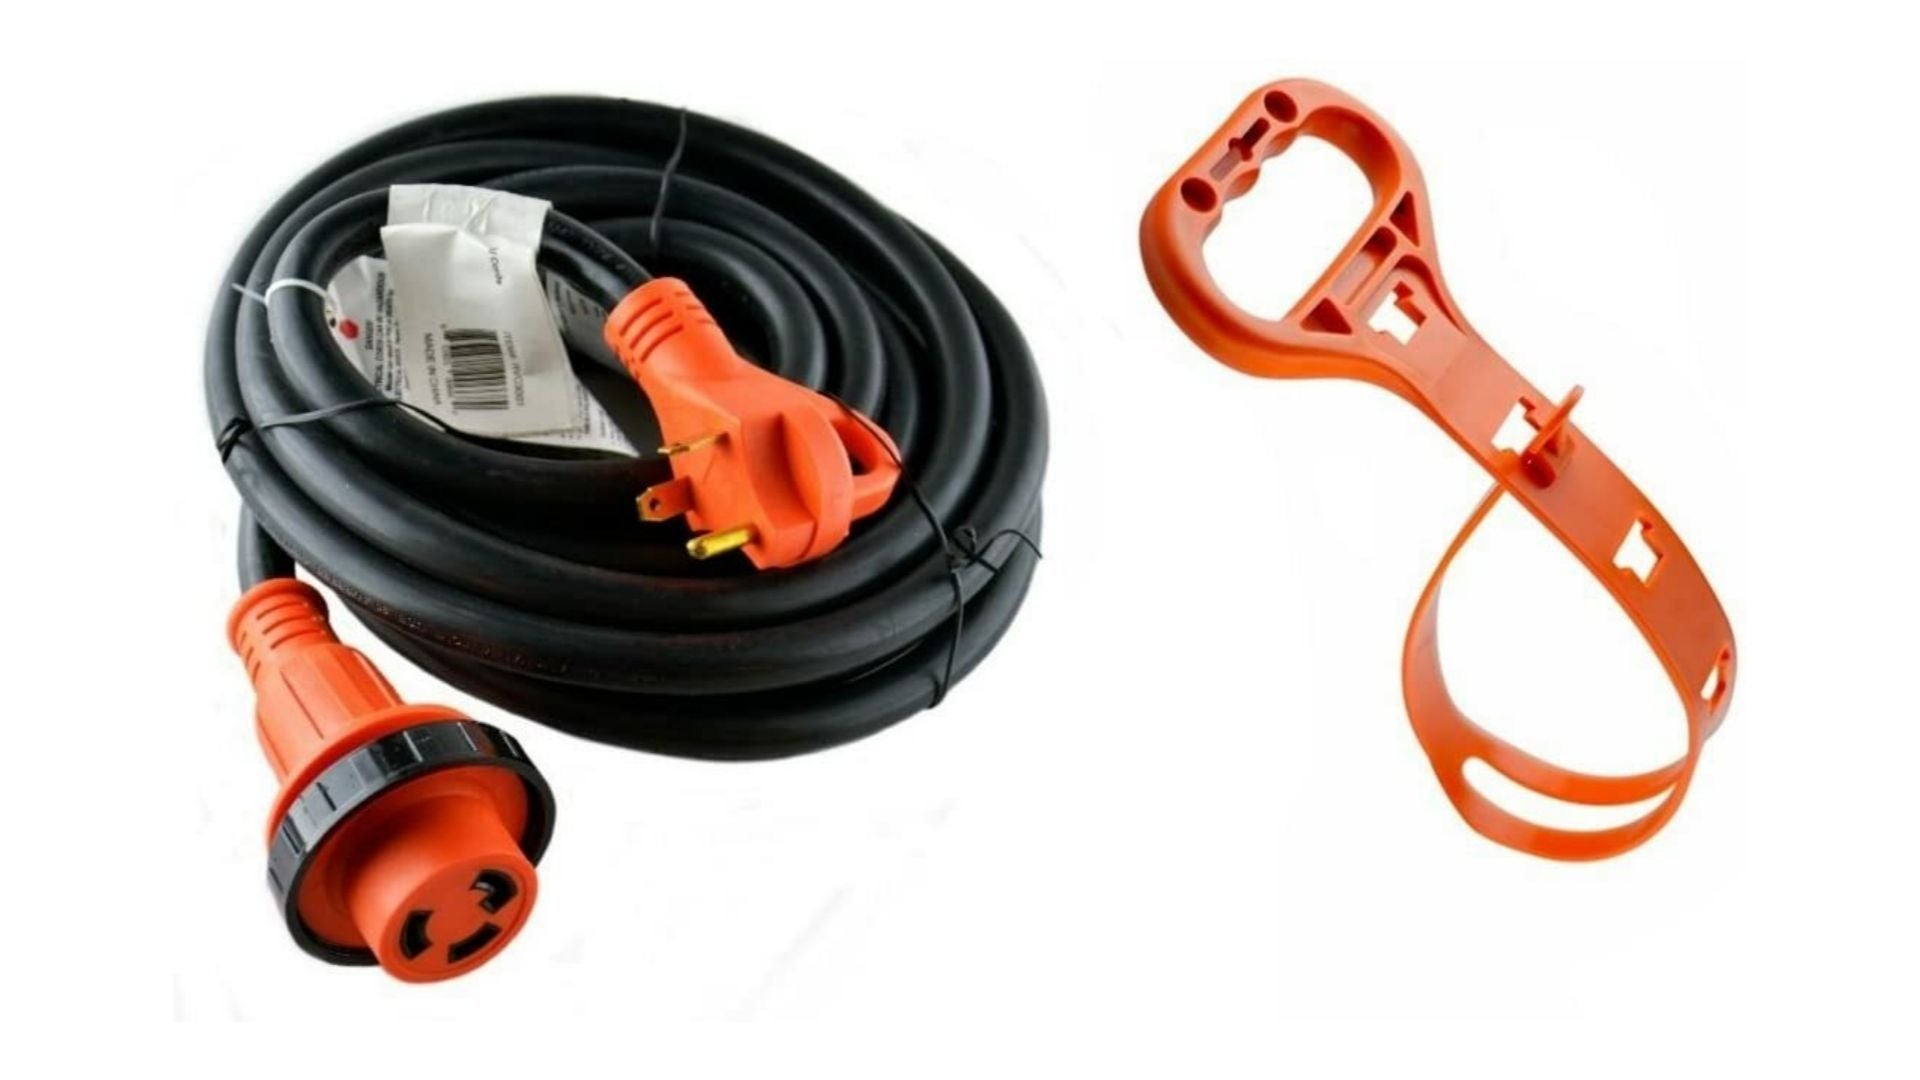 GoWise RVC3002 Power RV Extension Cord